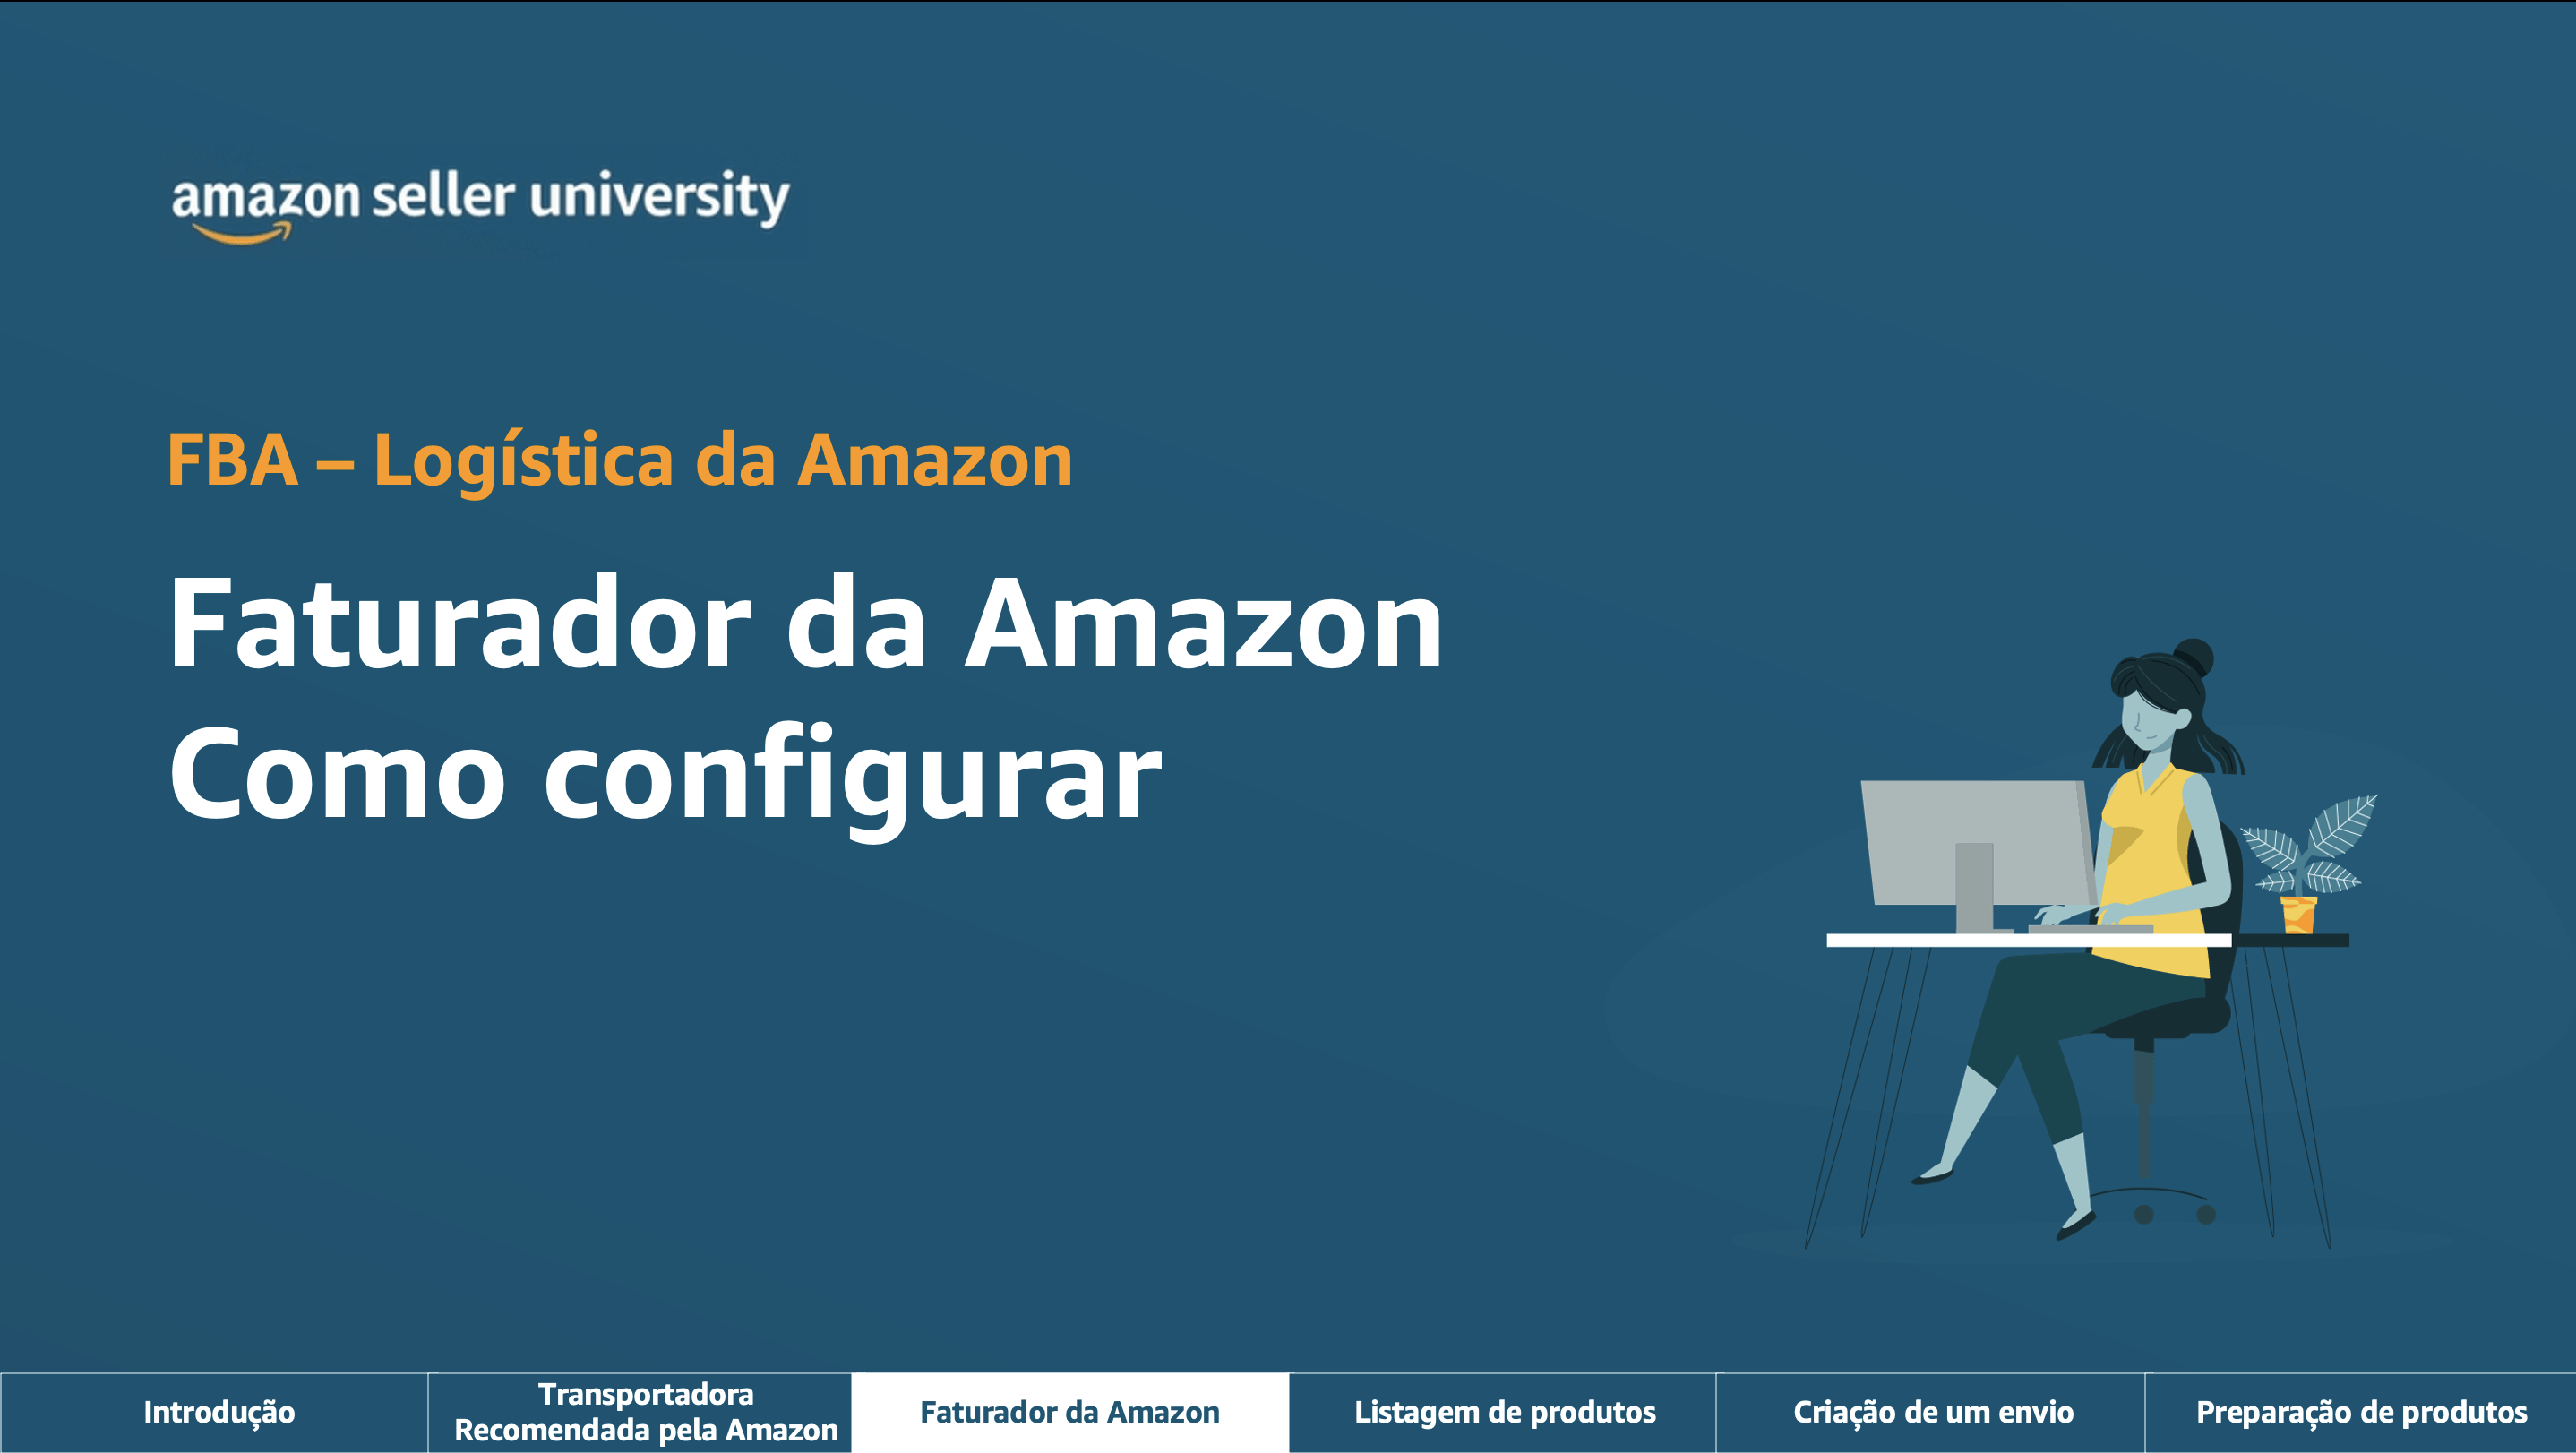 https://m.media-amazon.com/images/G/01/sp-marketing-toolkit/guides/design/iconography/Check_Badge_Outline.png